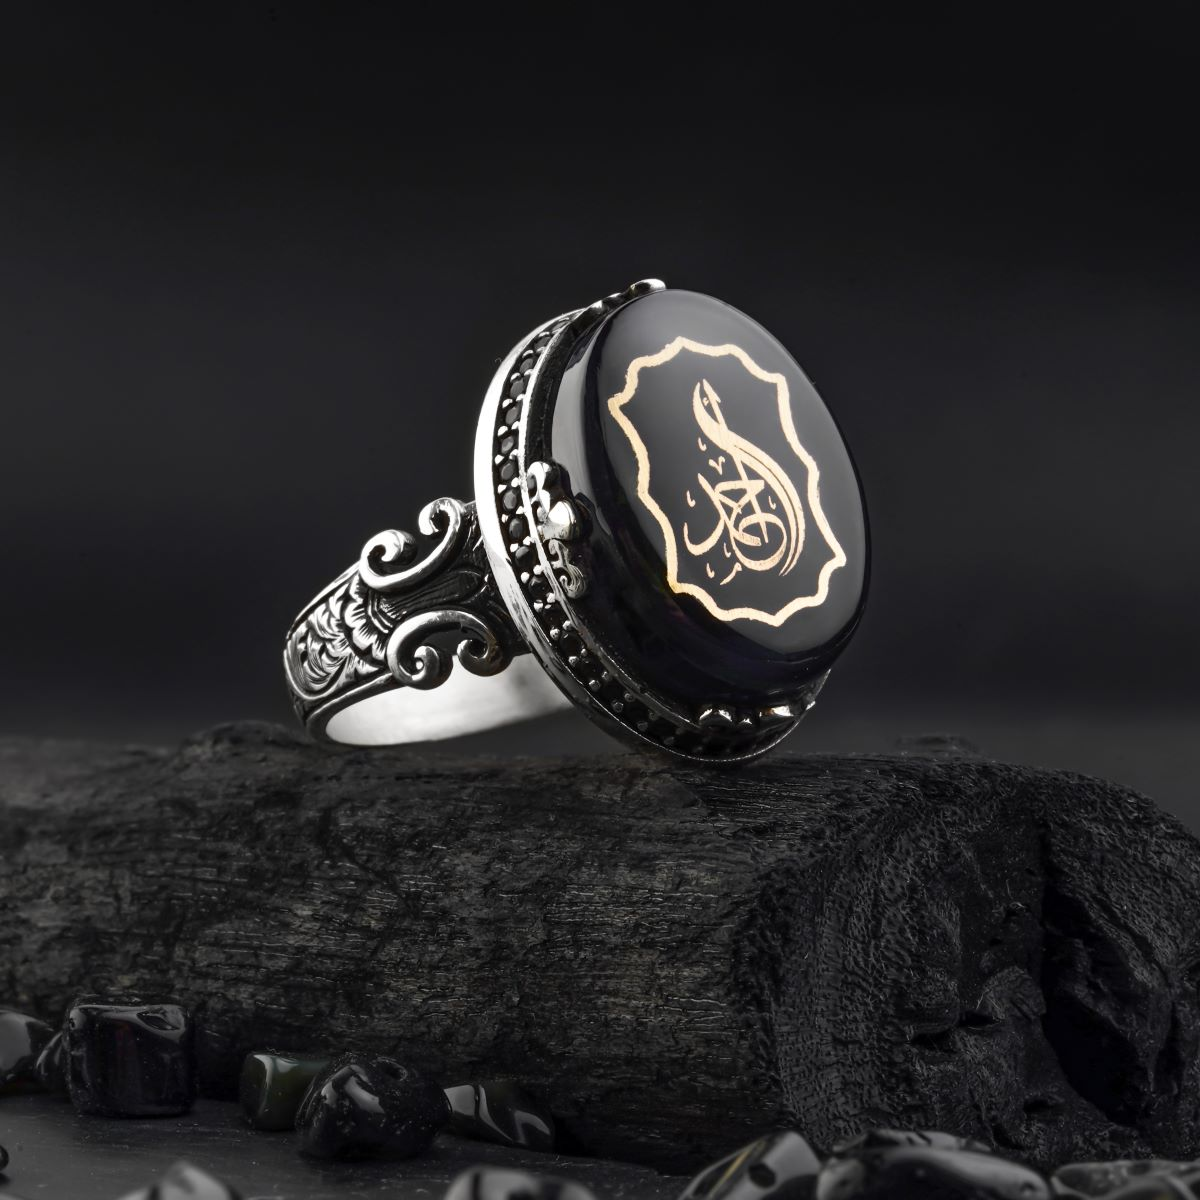 Guaranteed High Quality 925 Sterling Silver personalized name printing  Ring jewelry made in Turkey for men with luxury gift